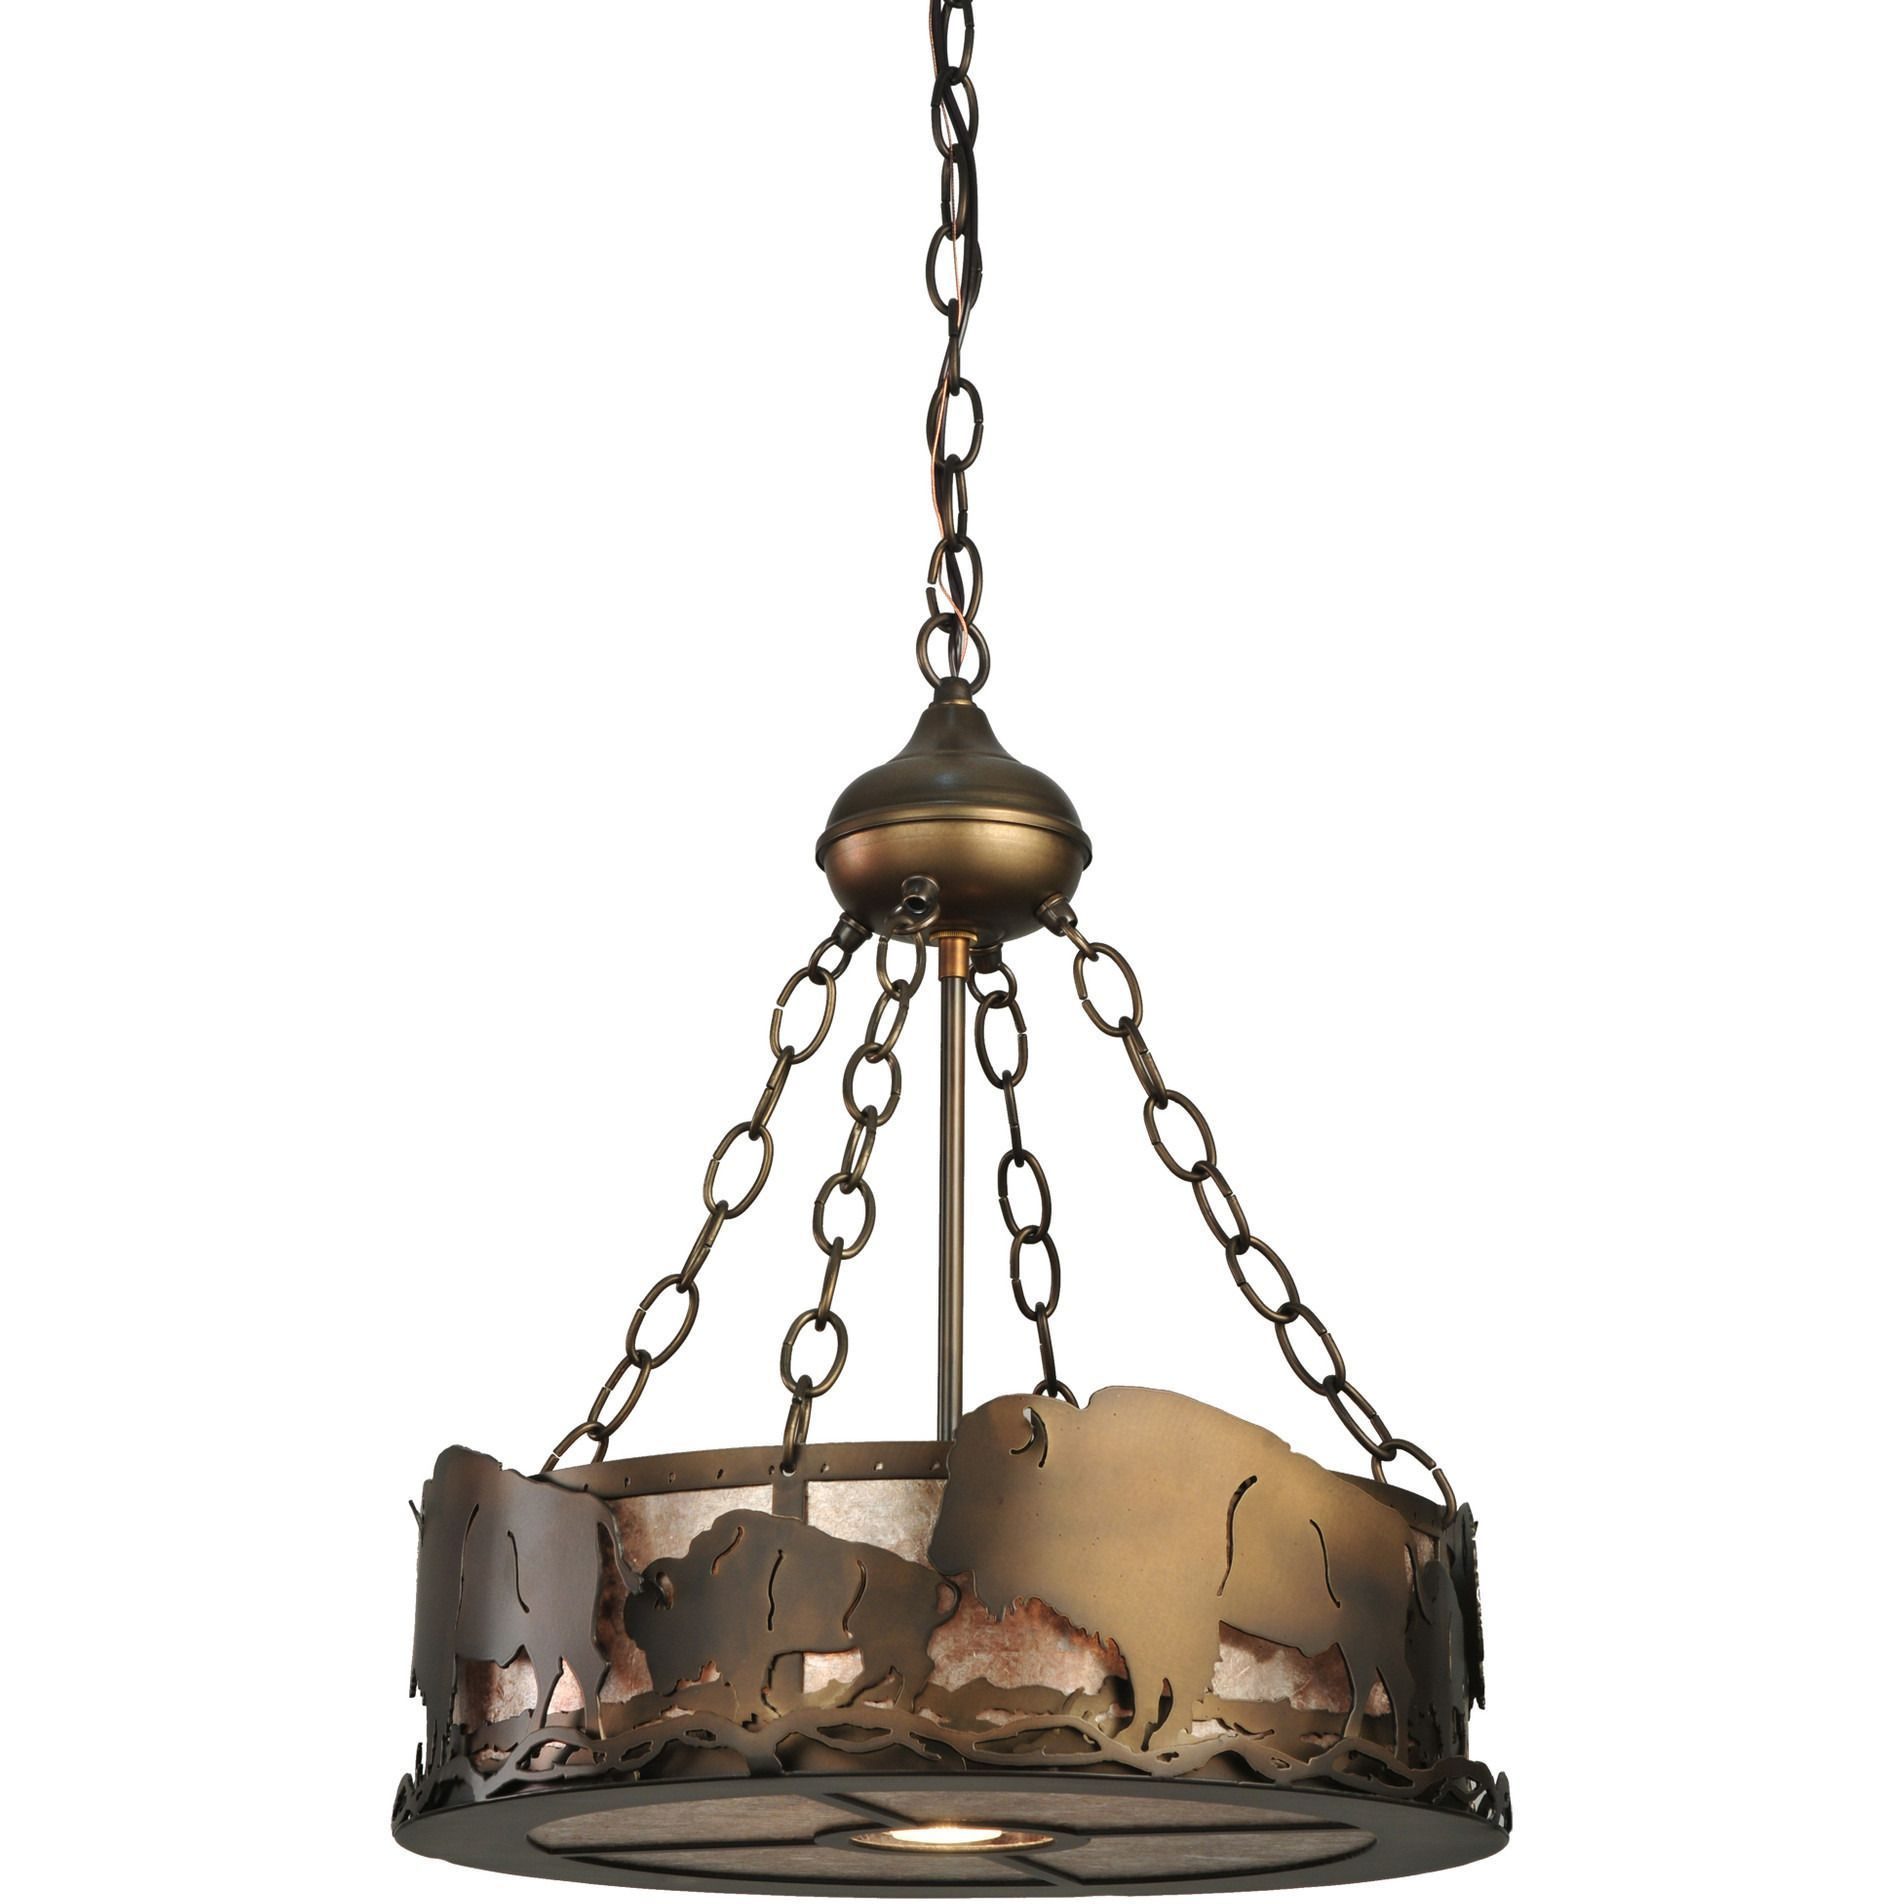 16 Inch W Buffalo Inverted Pendant Hanging LampsAntique